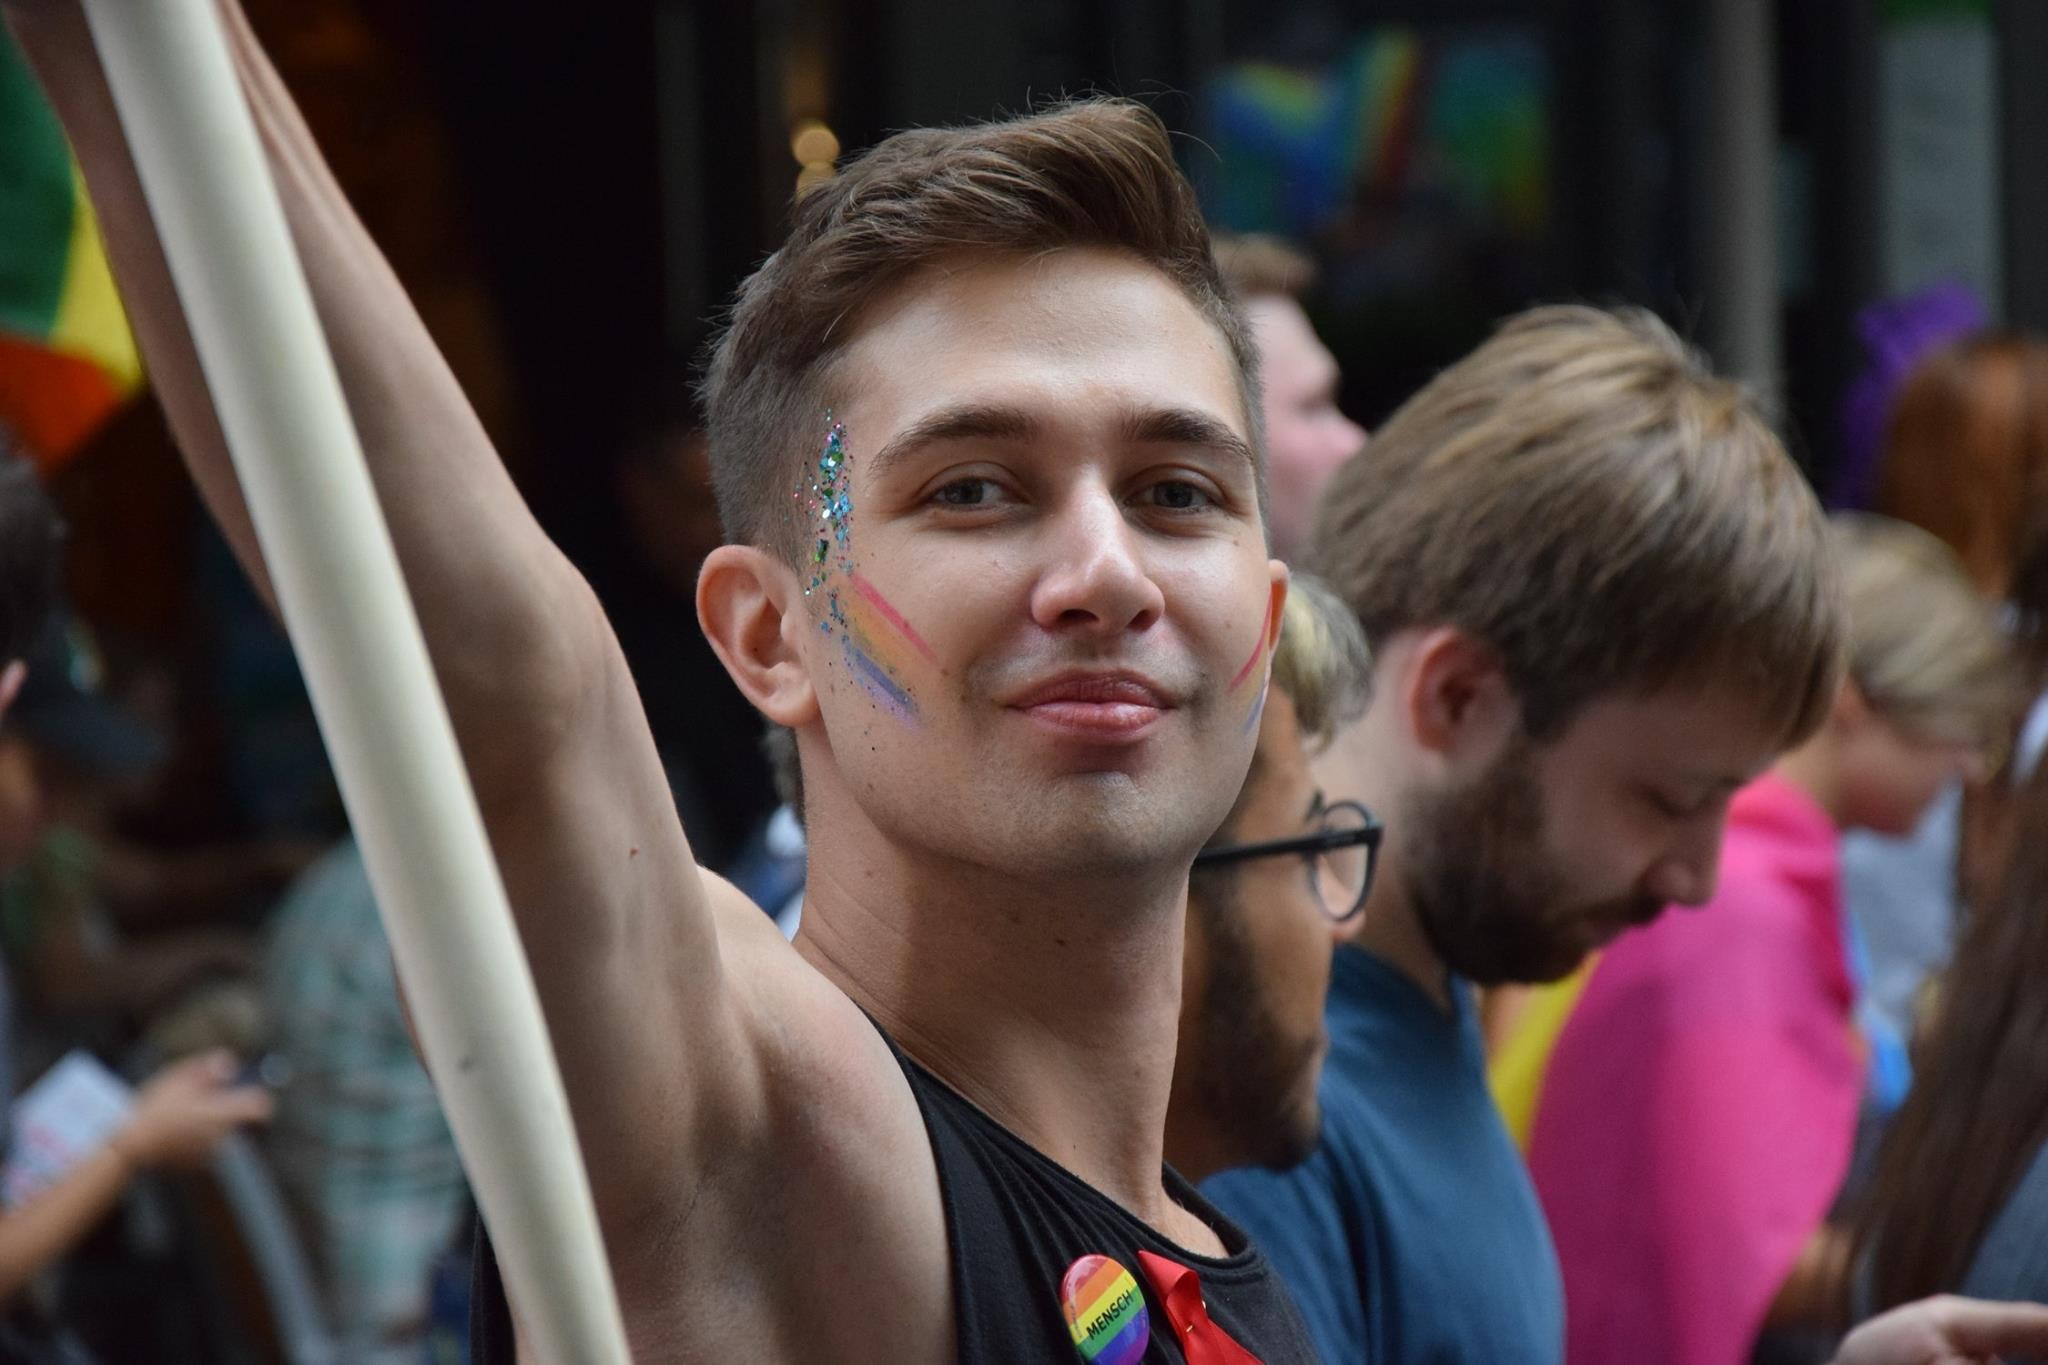 Lgbtq guide to munich gay bars and more